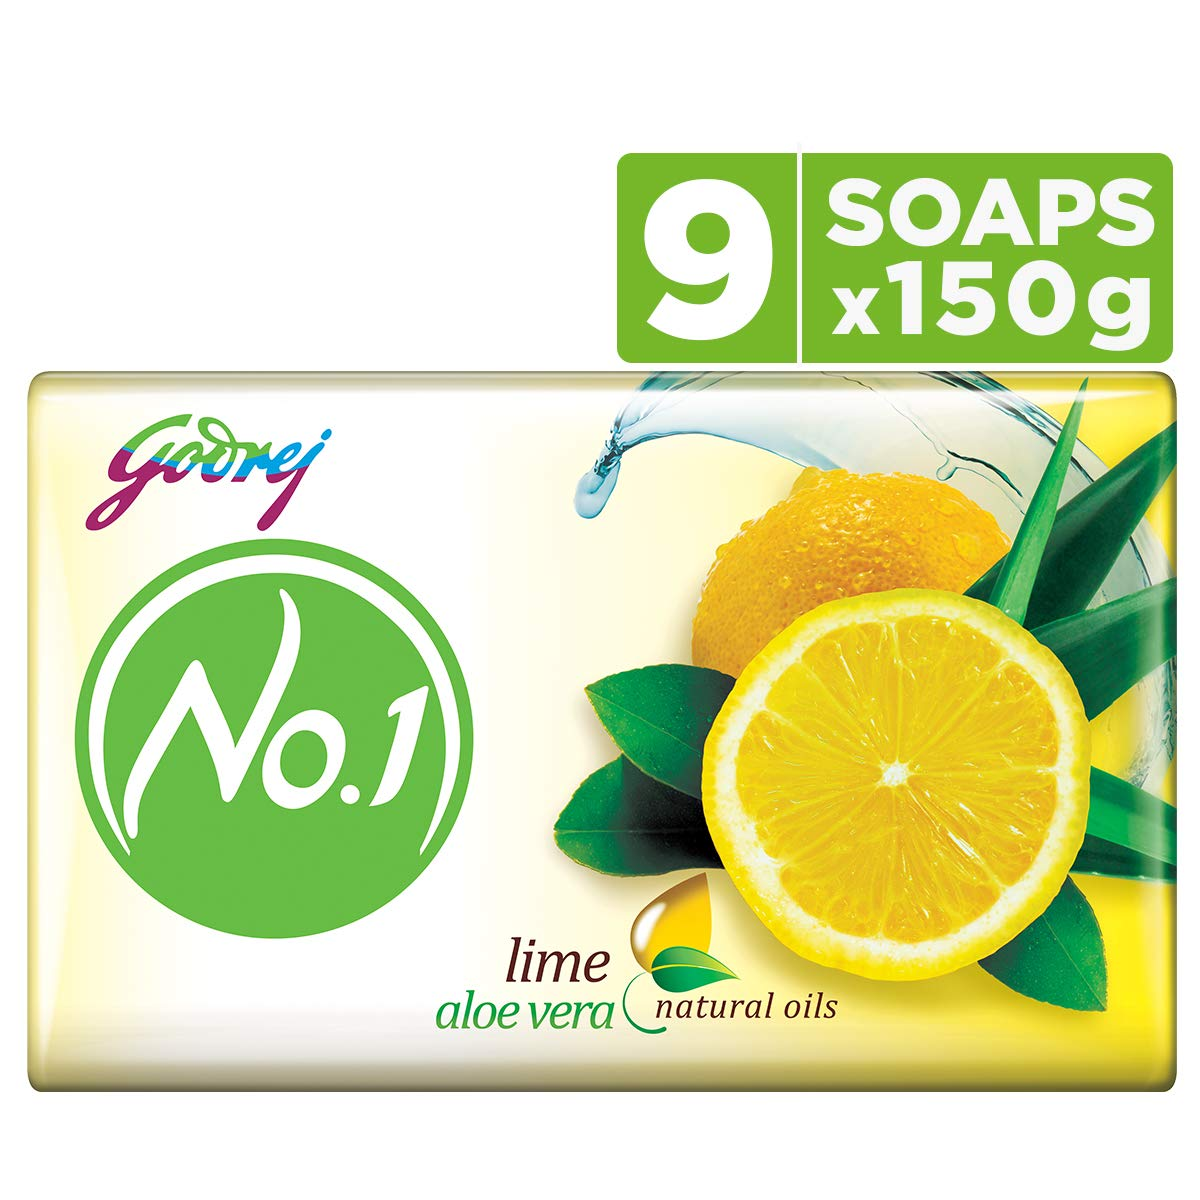 Godrej No.1 Bathing Soap – Sandal & Turmeric, 150g (Pack of 9)